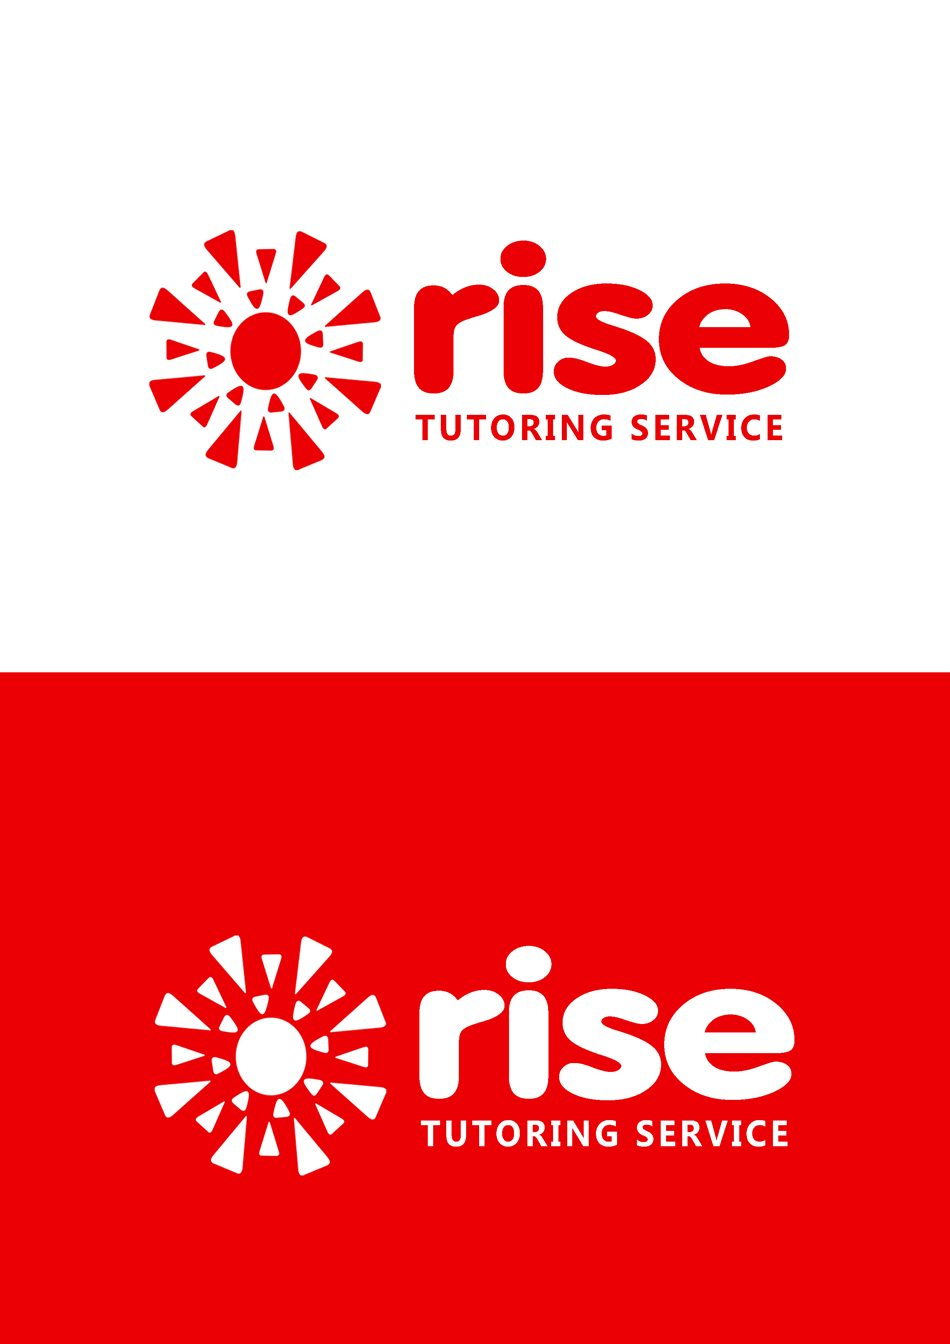 Logo Design by Respati Himawan - Entry No. 213 in the Logo Design Contest Imaginative Logo Design for Rise Tutoring Service.